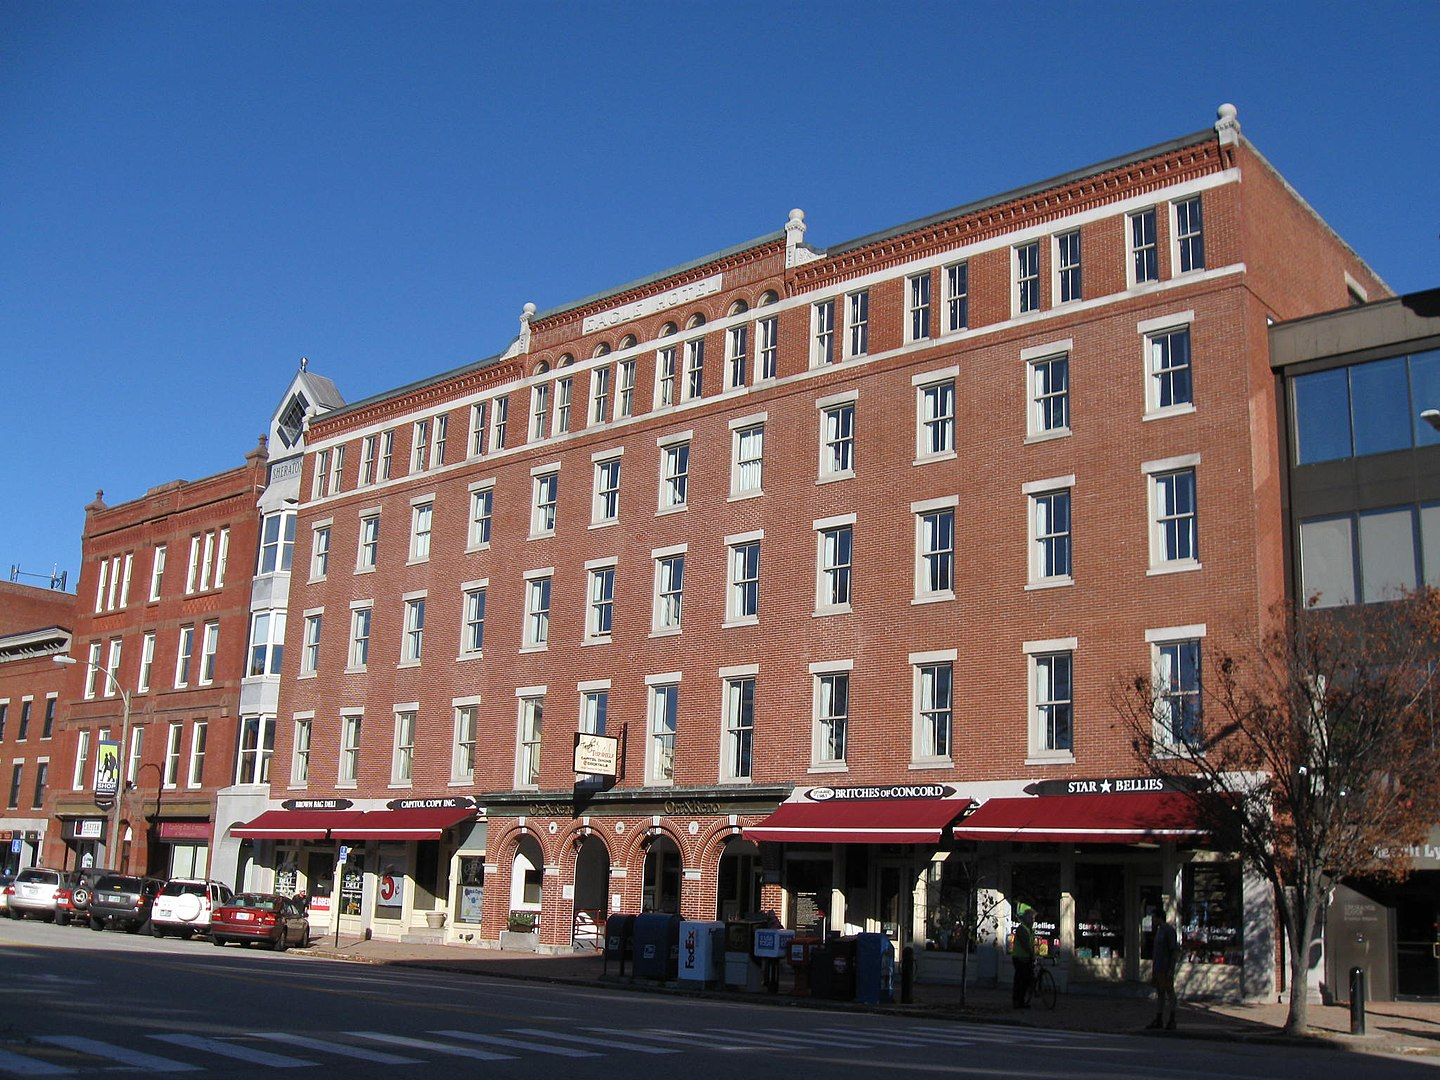 Eagle Hotel (Concord, NH), built in 1854.